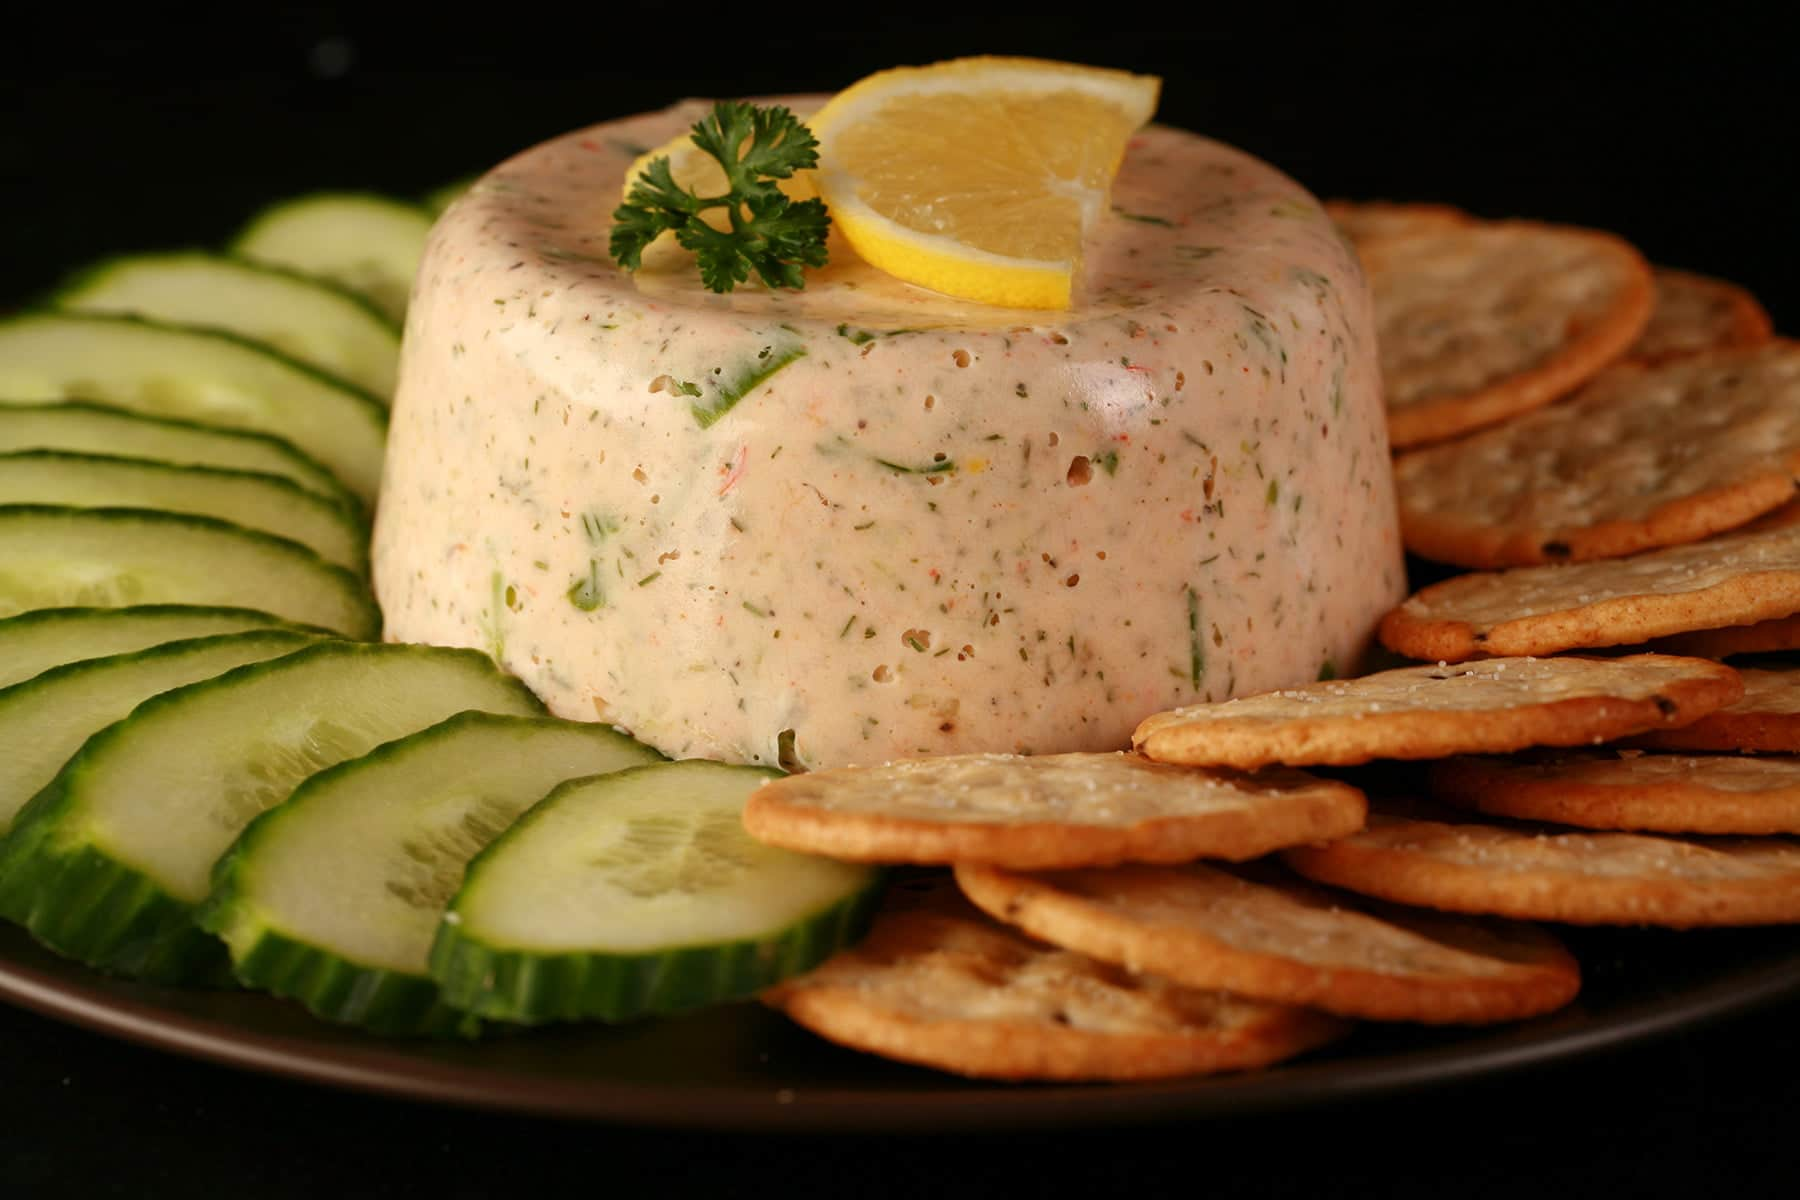 A closeup view of shrimp mousse. It is topped with slices of lemon and a sprig of parsley, and is surrounded by cucumber slices and crackers.